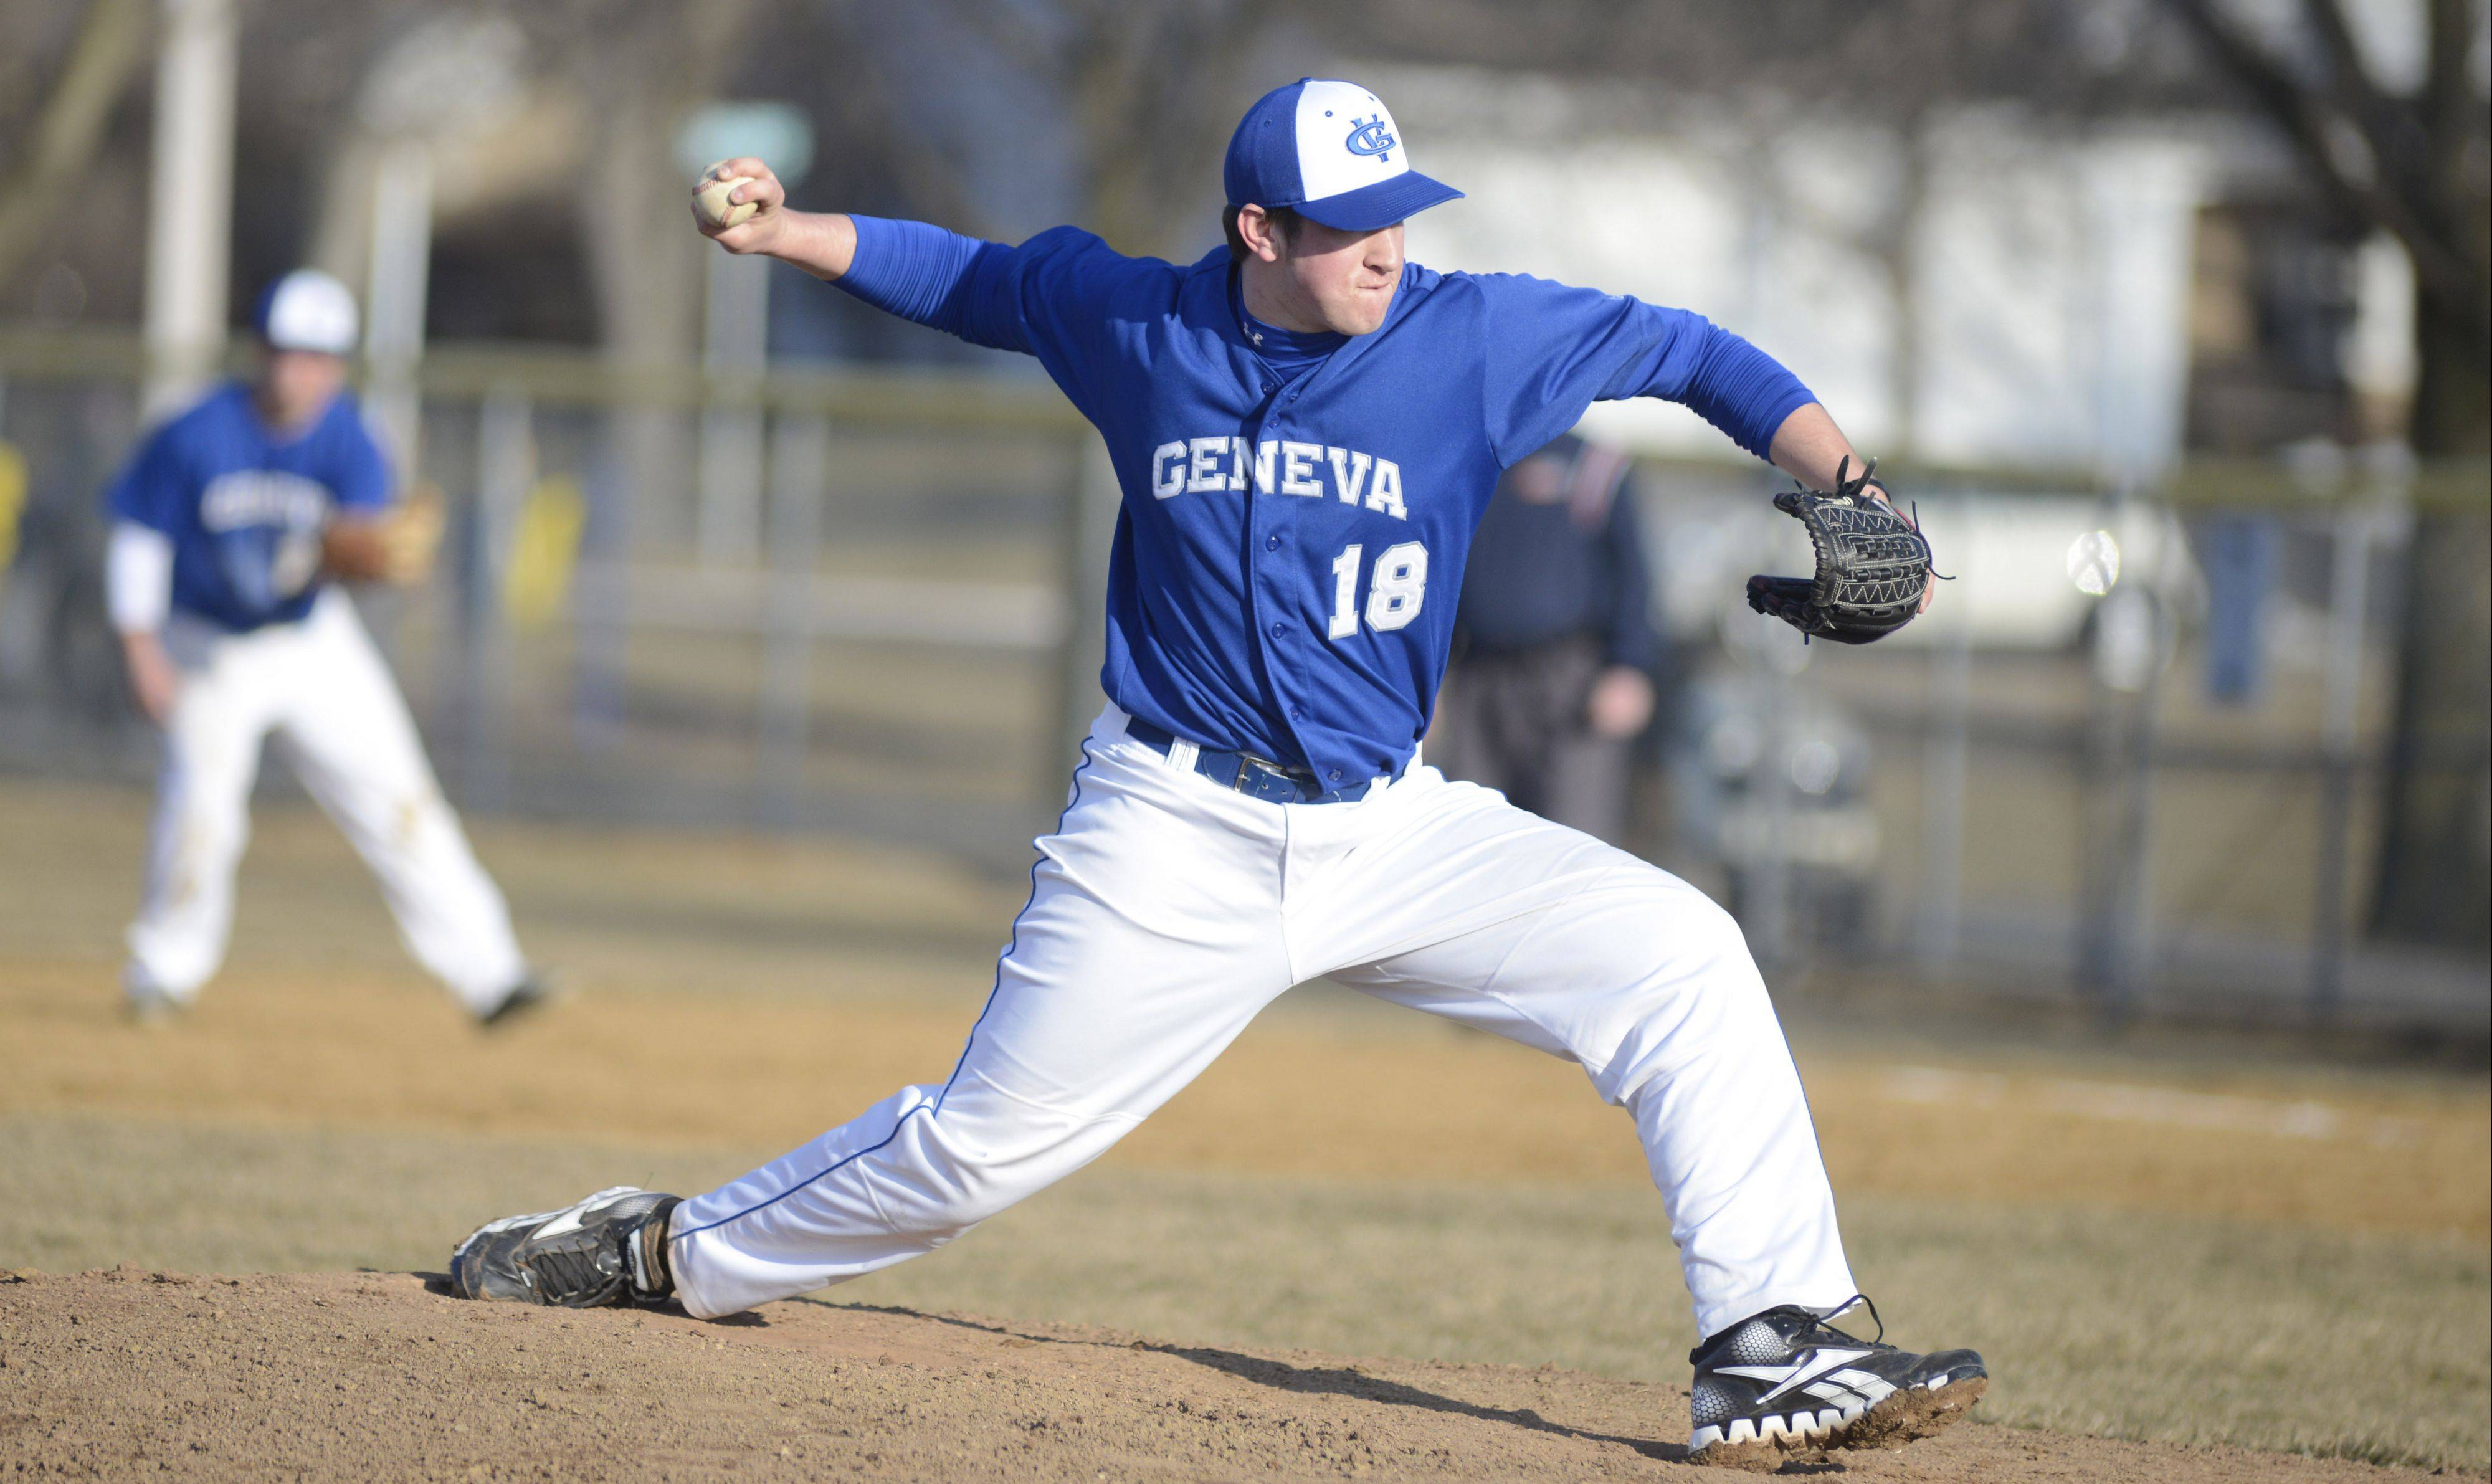 Geneva's Tony Landi pitches to Marmion Academy on Thursday, March 28.